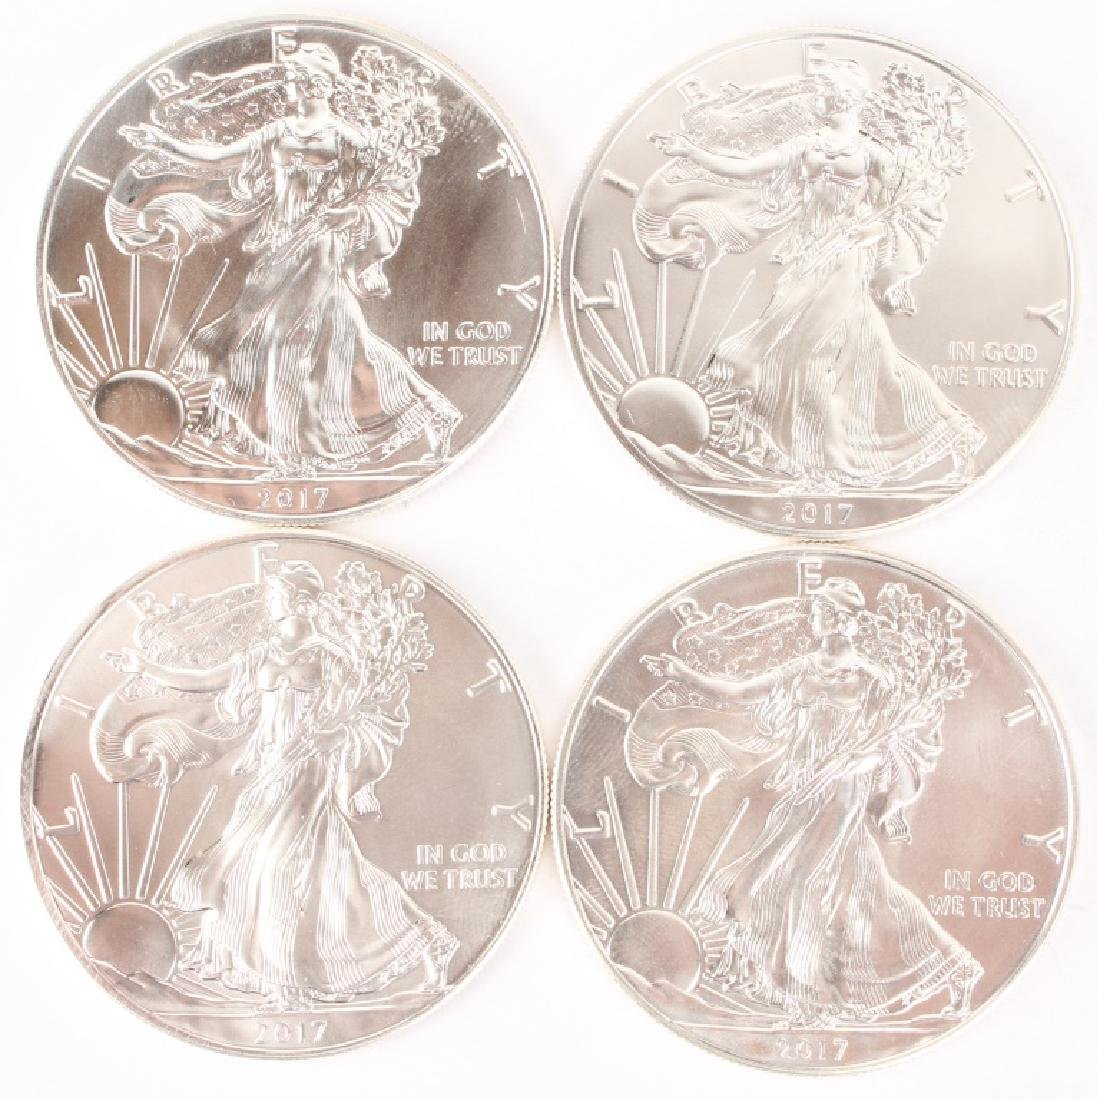 (4) AMERICAN SILVER EAGLE ONE OUNCE SILVER COINS